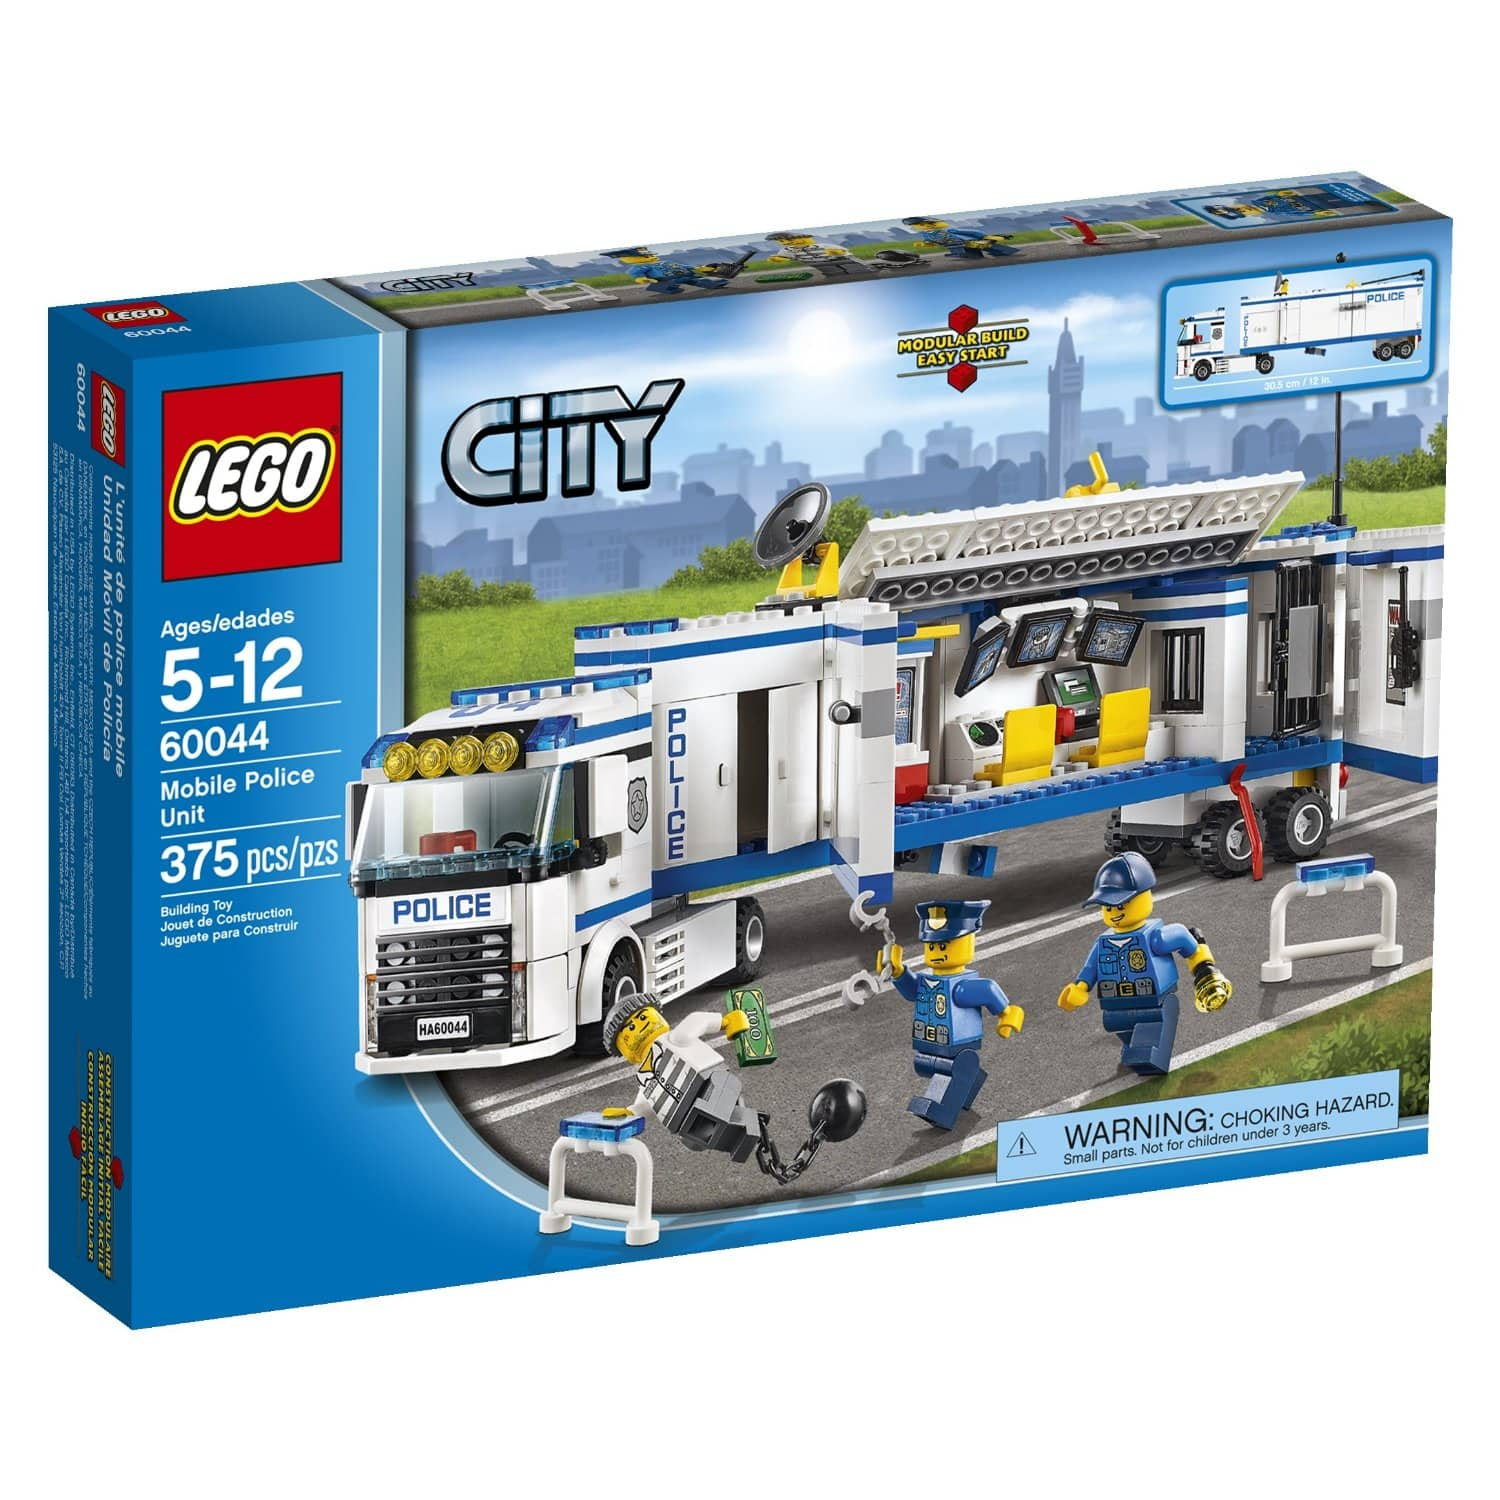 Amazon and Walmart : LEGO City Police 60044 Mobile Police Unit for $29.24 plus taxes